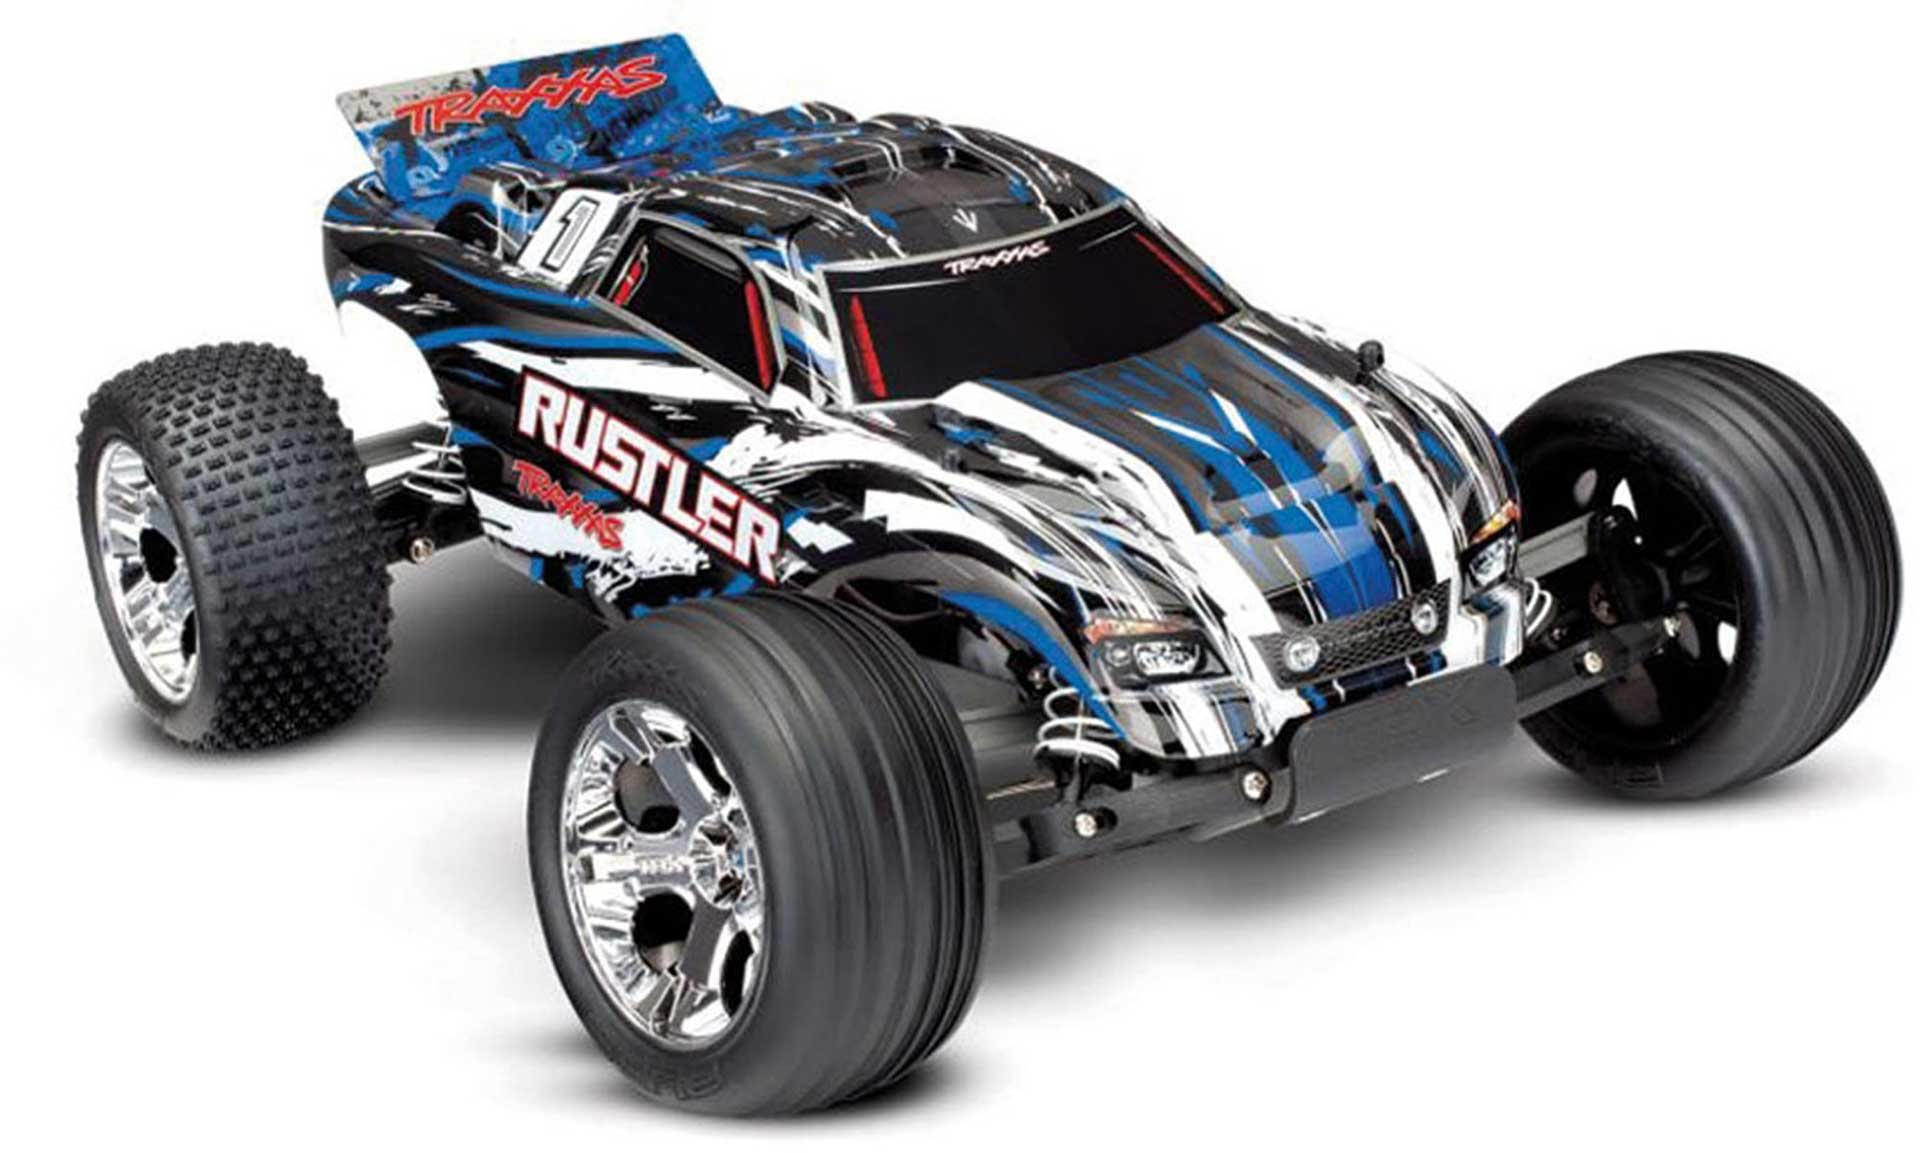 TRAXXAS RUSTLER BLUE MONSTER TRUCK BRUSHED 1/10 2WD RTR WITHOUT BATTERY/CHARGER